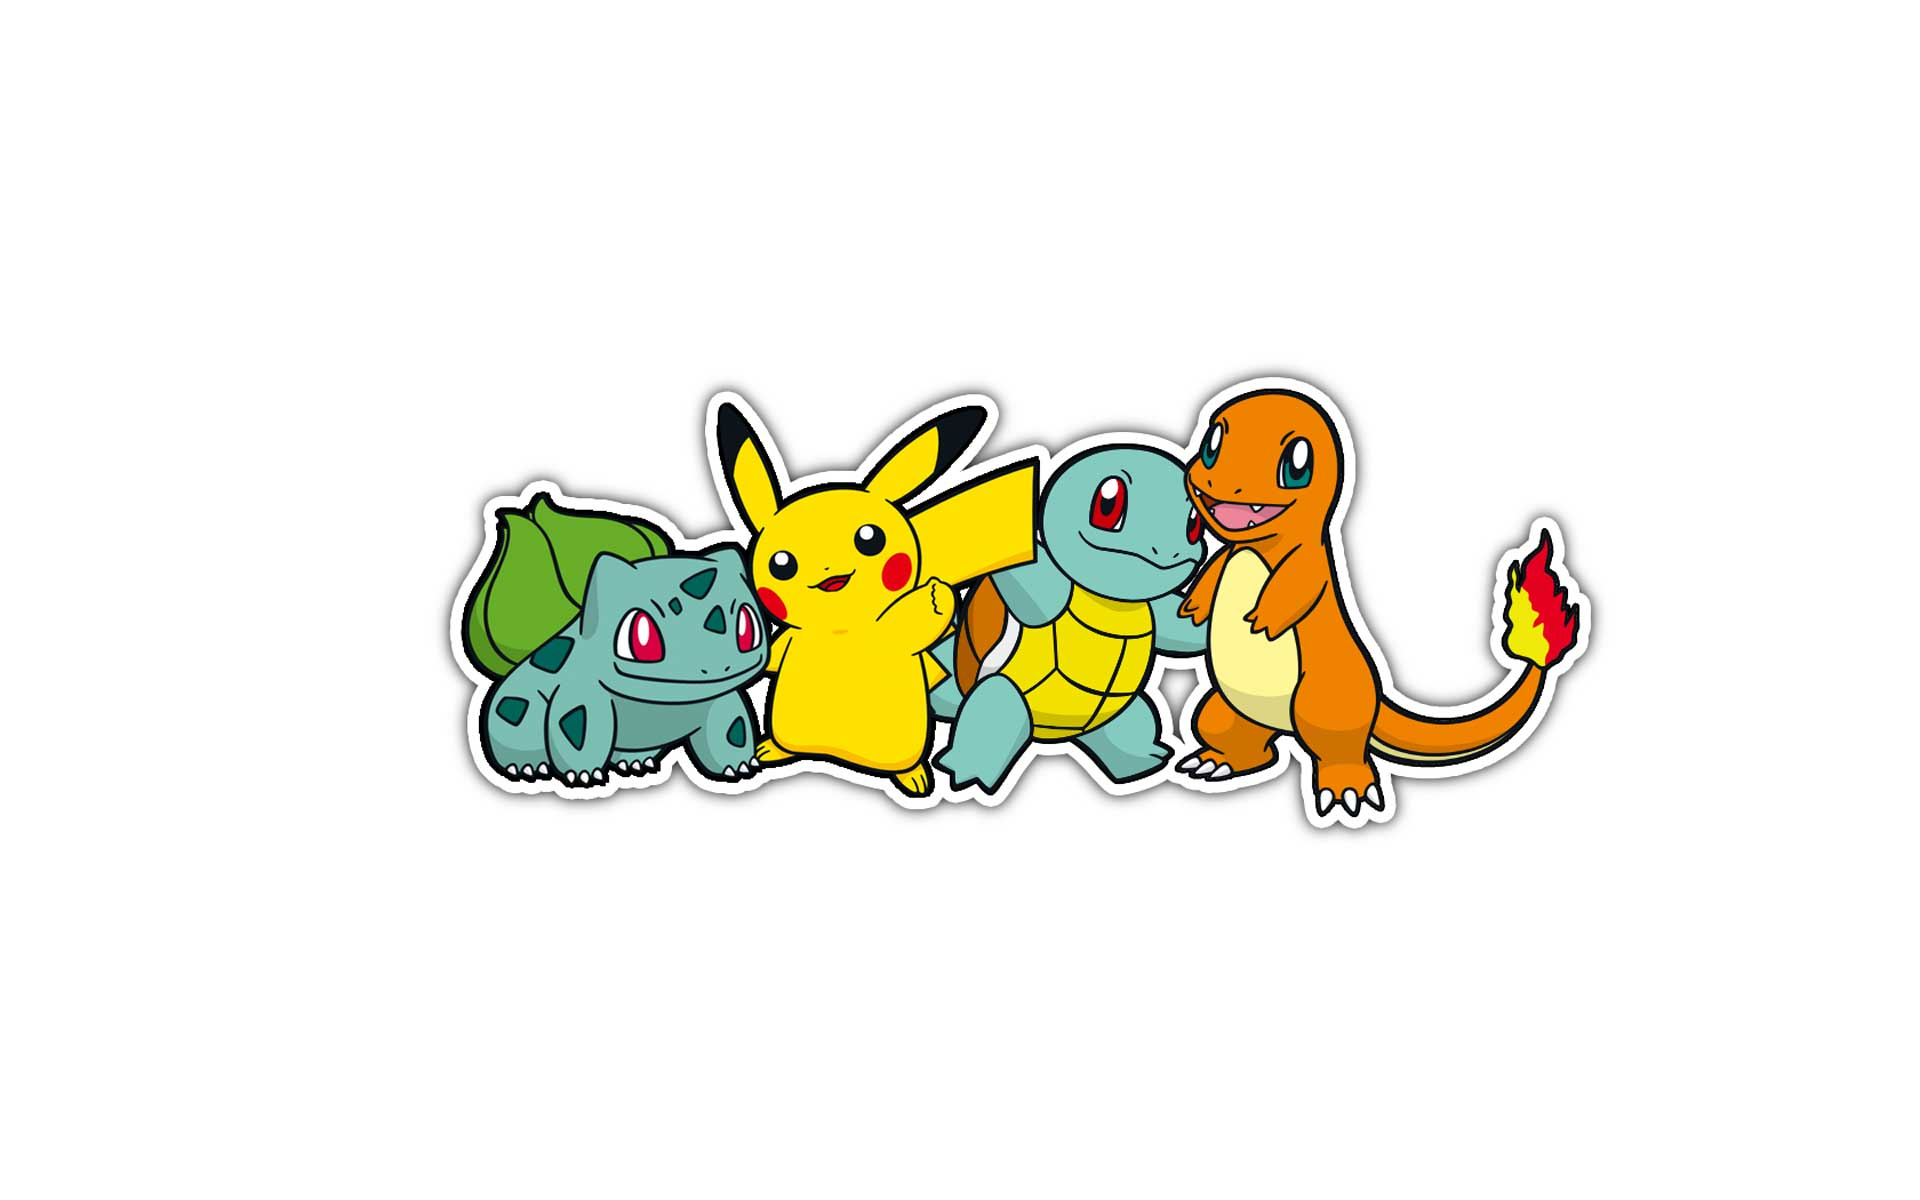 fantastic-pokemon-wallpaper-4340-4571-hd-wallpapers